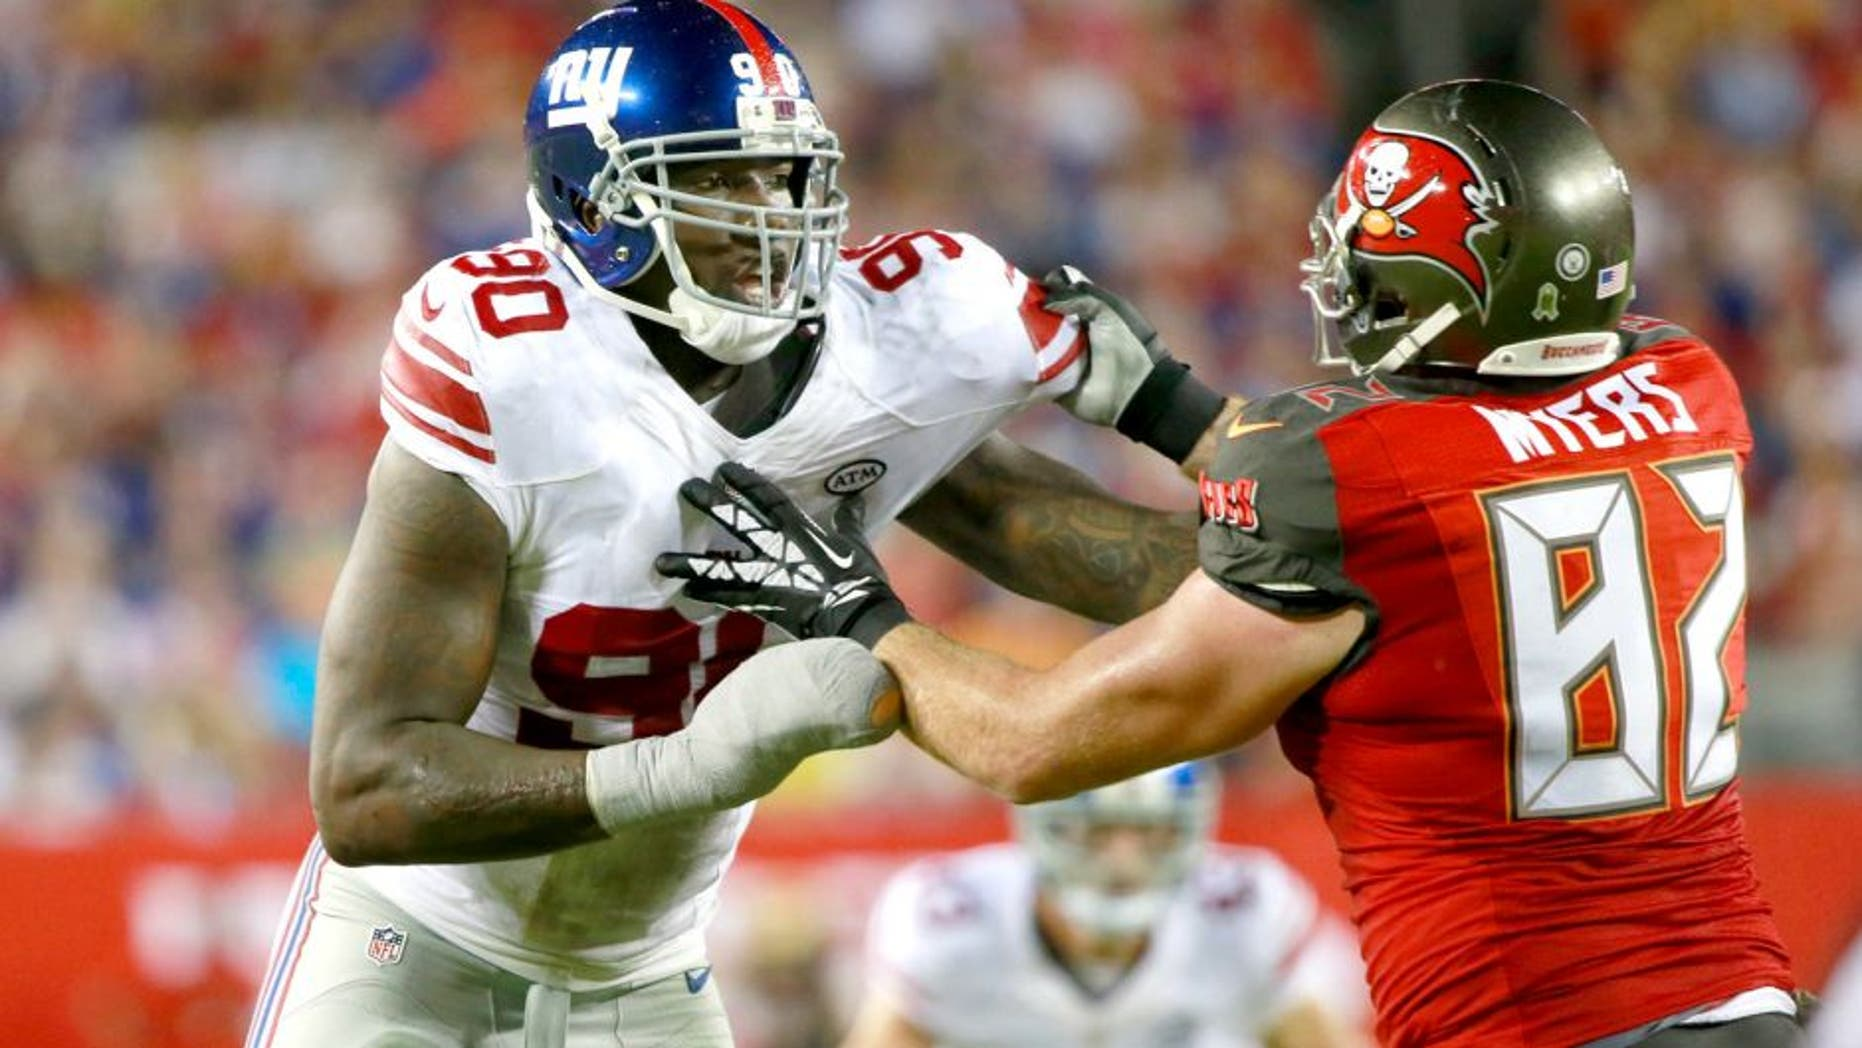 Nov 8, 2015; Tampa, FL, USA; New York Giants defensive end Jason Pierre-Paul (90) rushes as Tampa Bay Buccaneers tight end Brandon Myers (82) blocks during the second half at Raymond James Stadium. New York Giants defeated the Tampa Bay Buccaneers 32-18. Mandatory Credit: Kim Klement-USA TODAY Sports